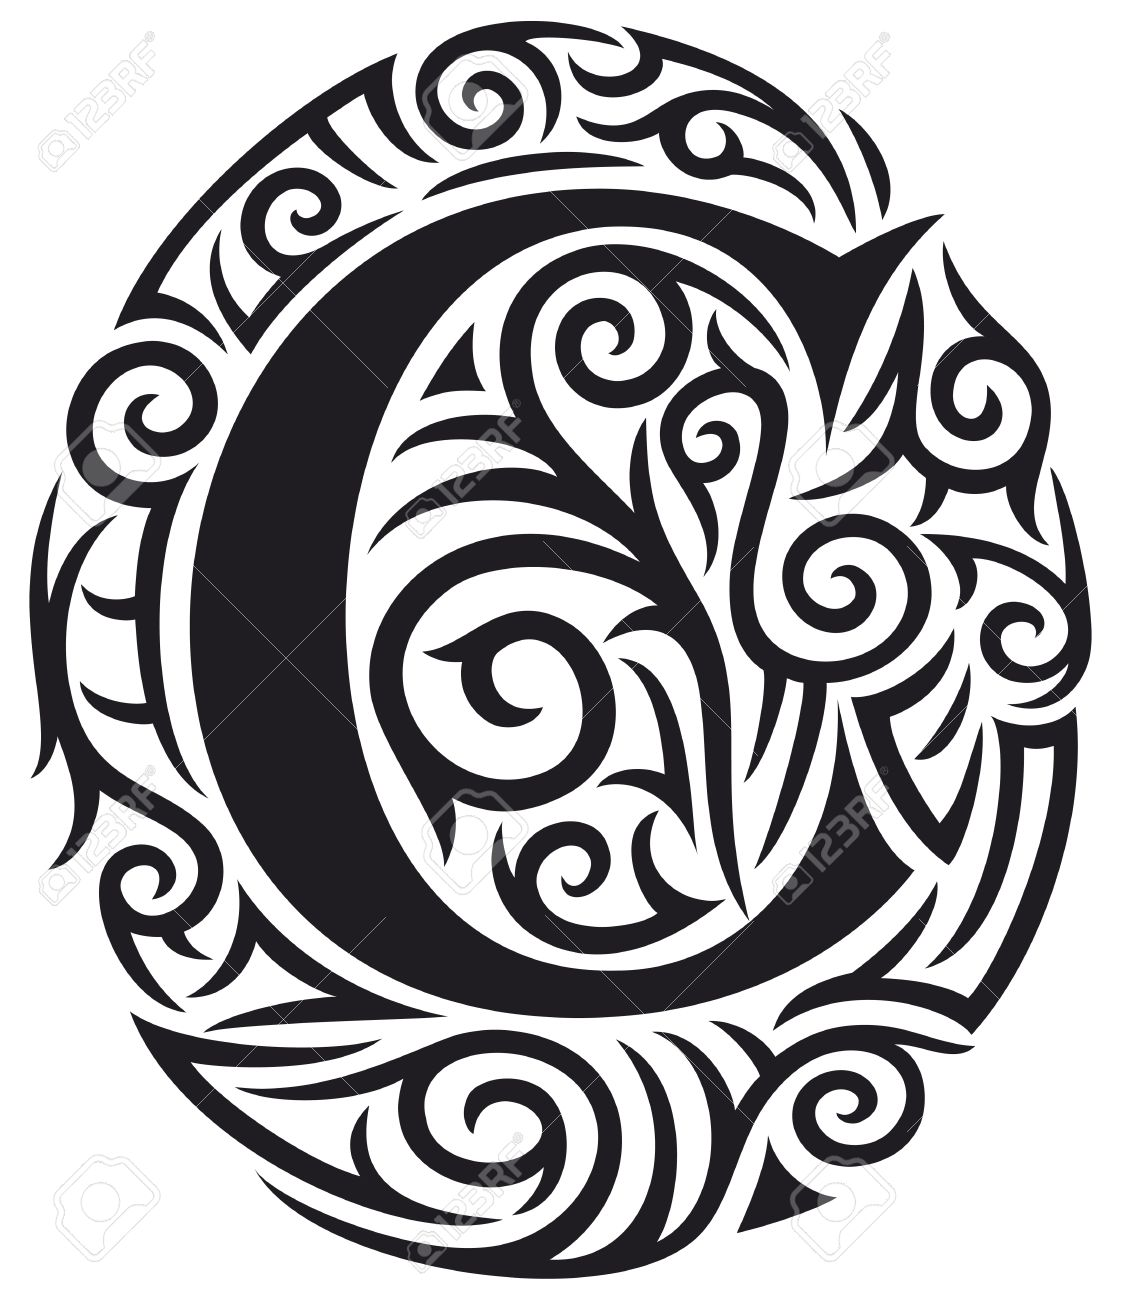 Letter C Tattoo Tribal Design Royalty Free Cliparts Vectors And